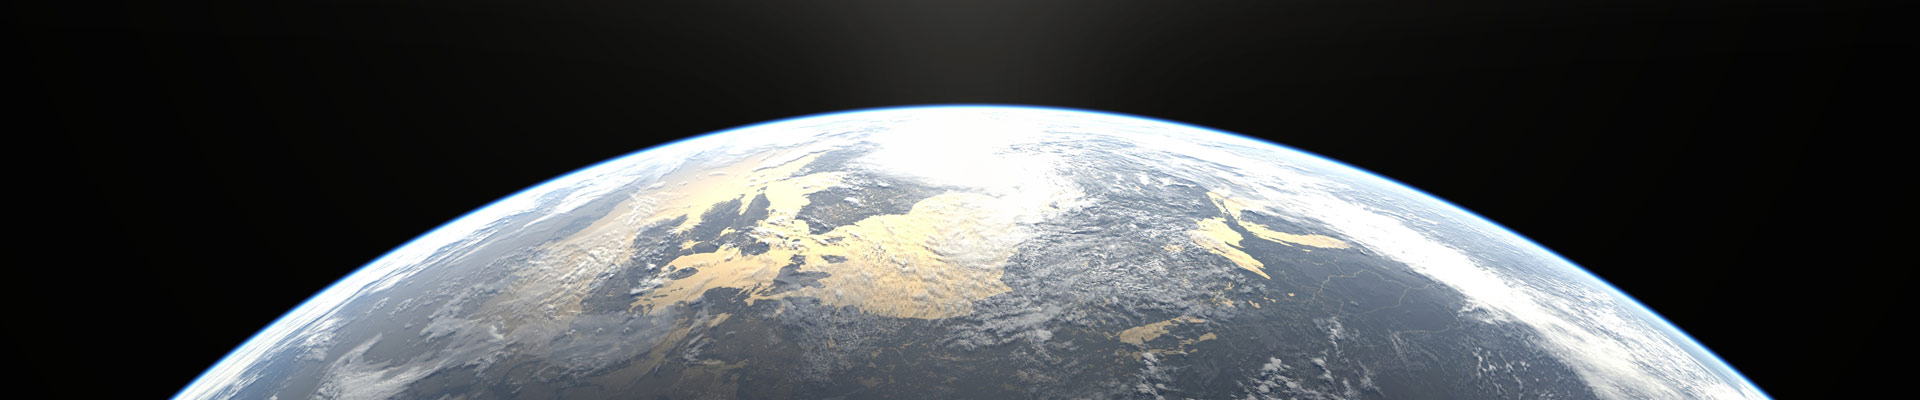 Earth horizon from space